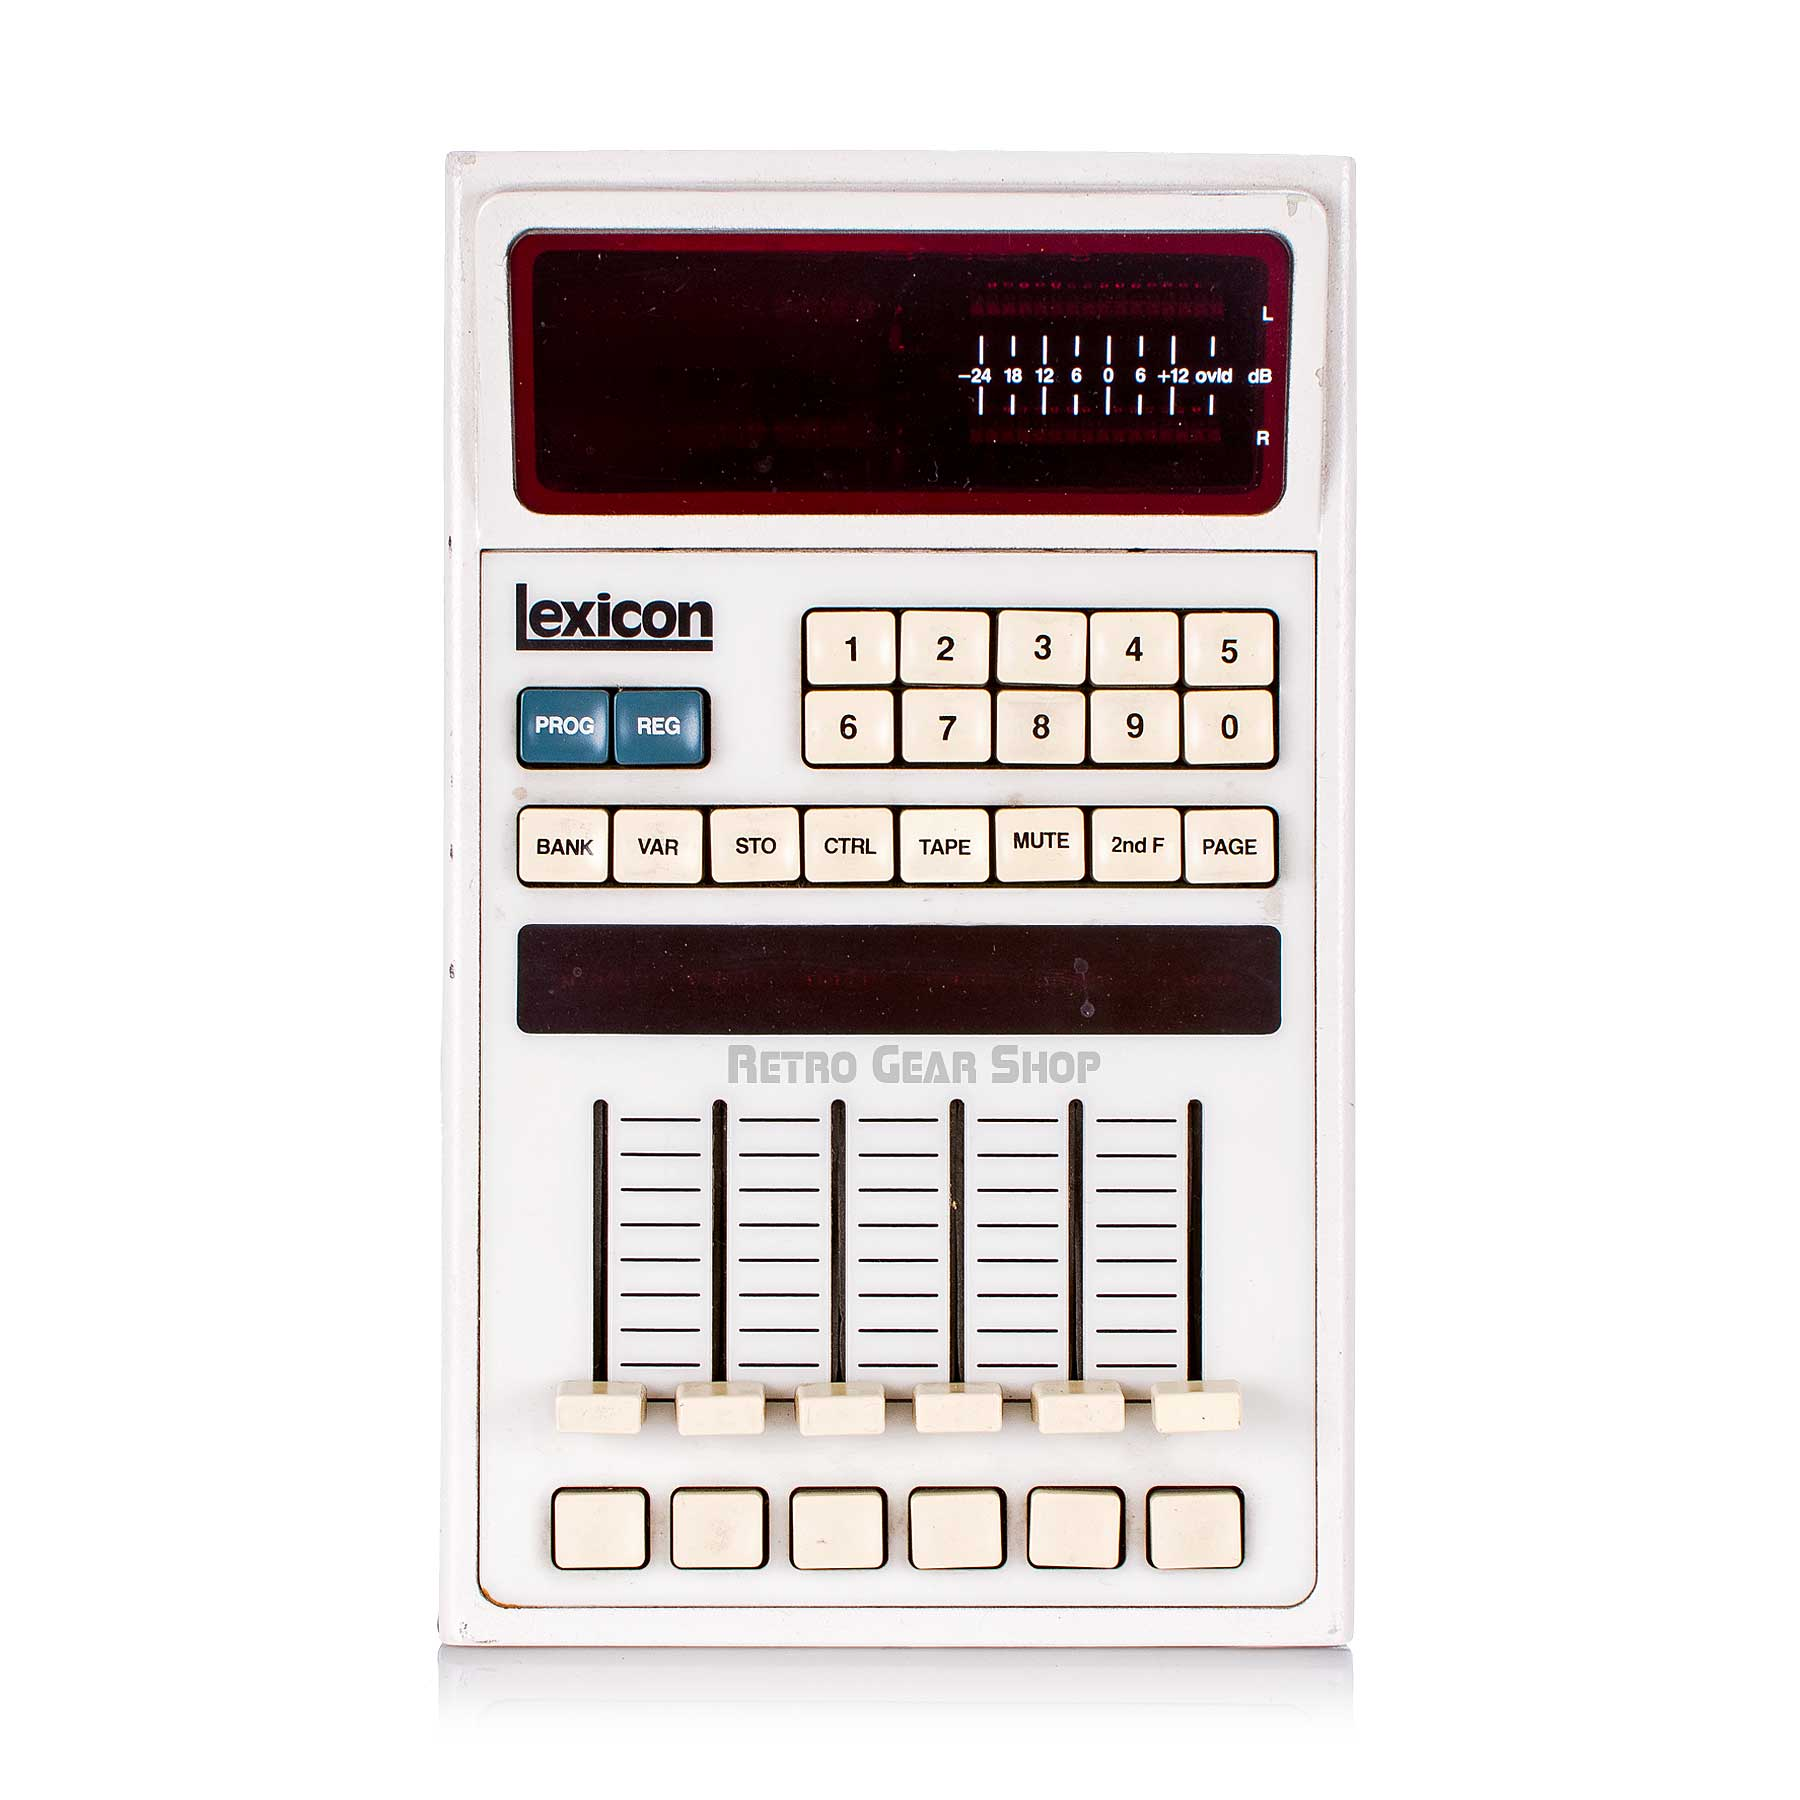 Lexicon 480L Larc 6444 Top